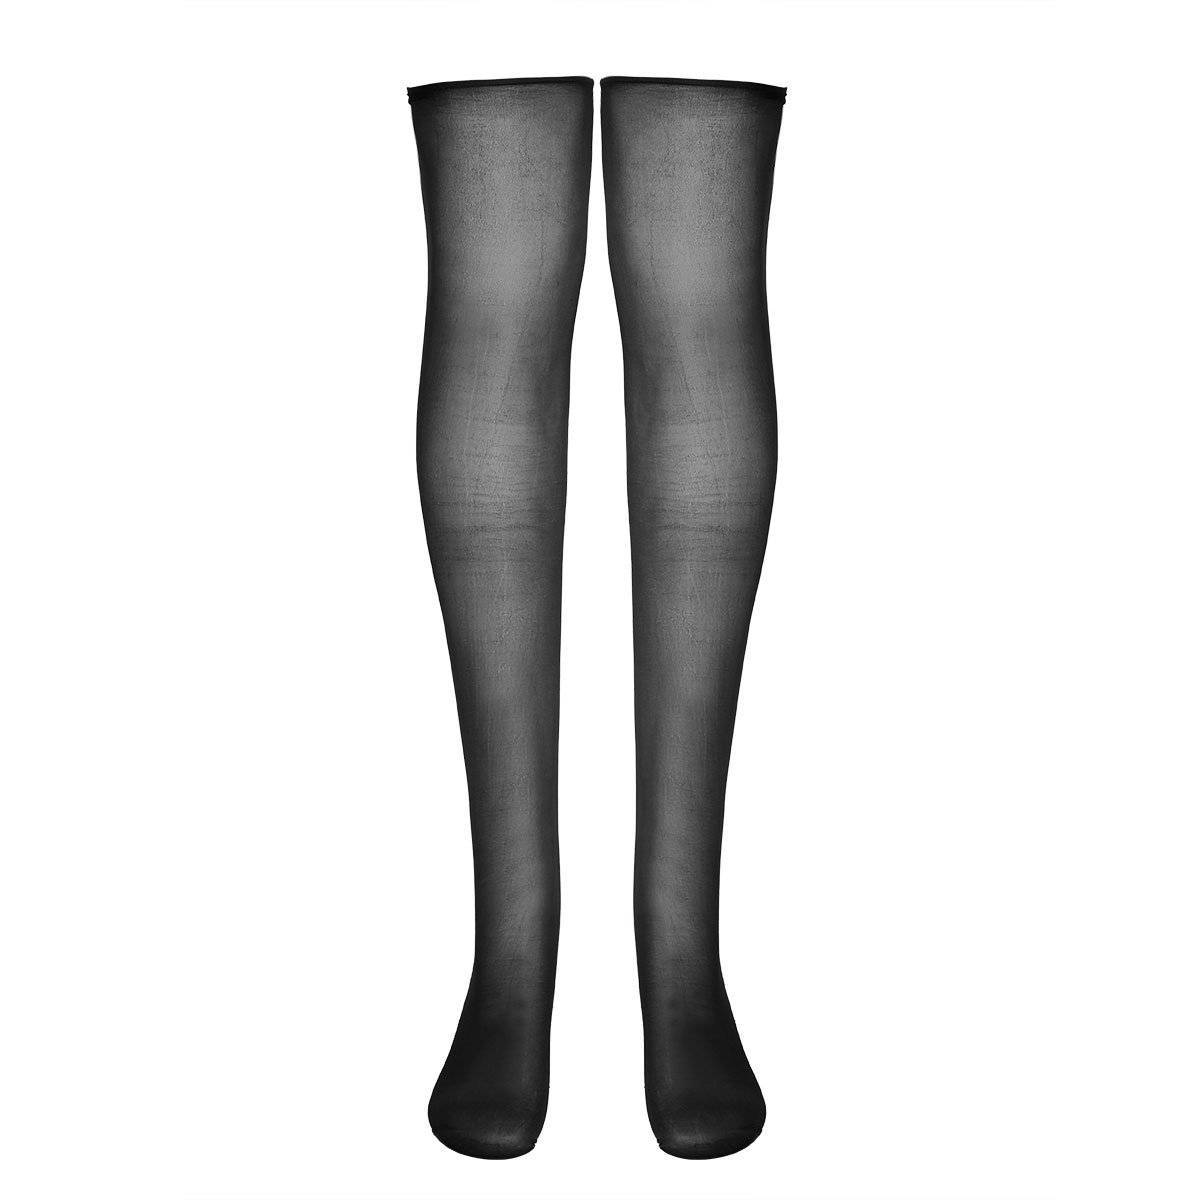 be08b2b2240bc ... Women's Control Top Ultra Shimmery Stretch 70D Thickness Footed Silk  Stockings Pantyhose Tights Black Long Stockings One Size: Amazon.co.uk:  Clothing